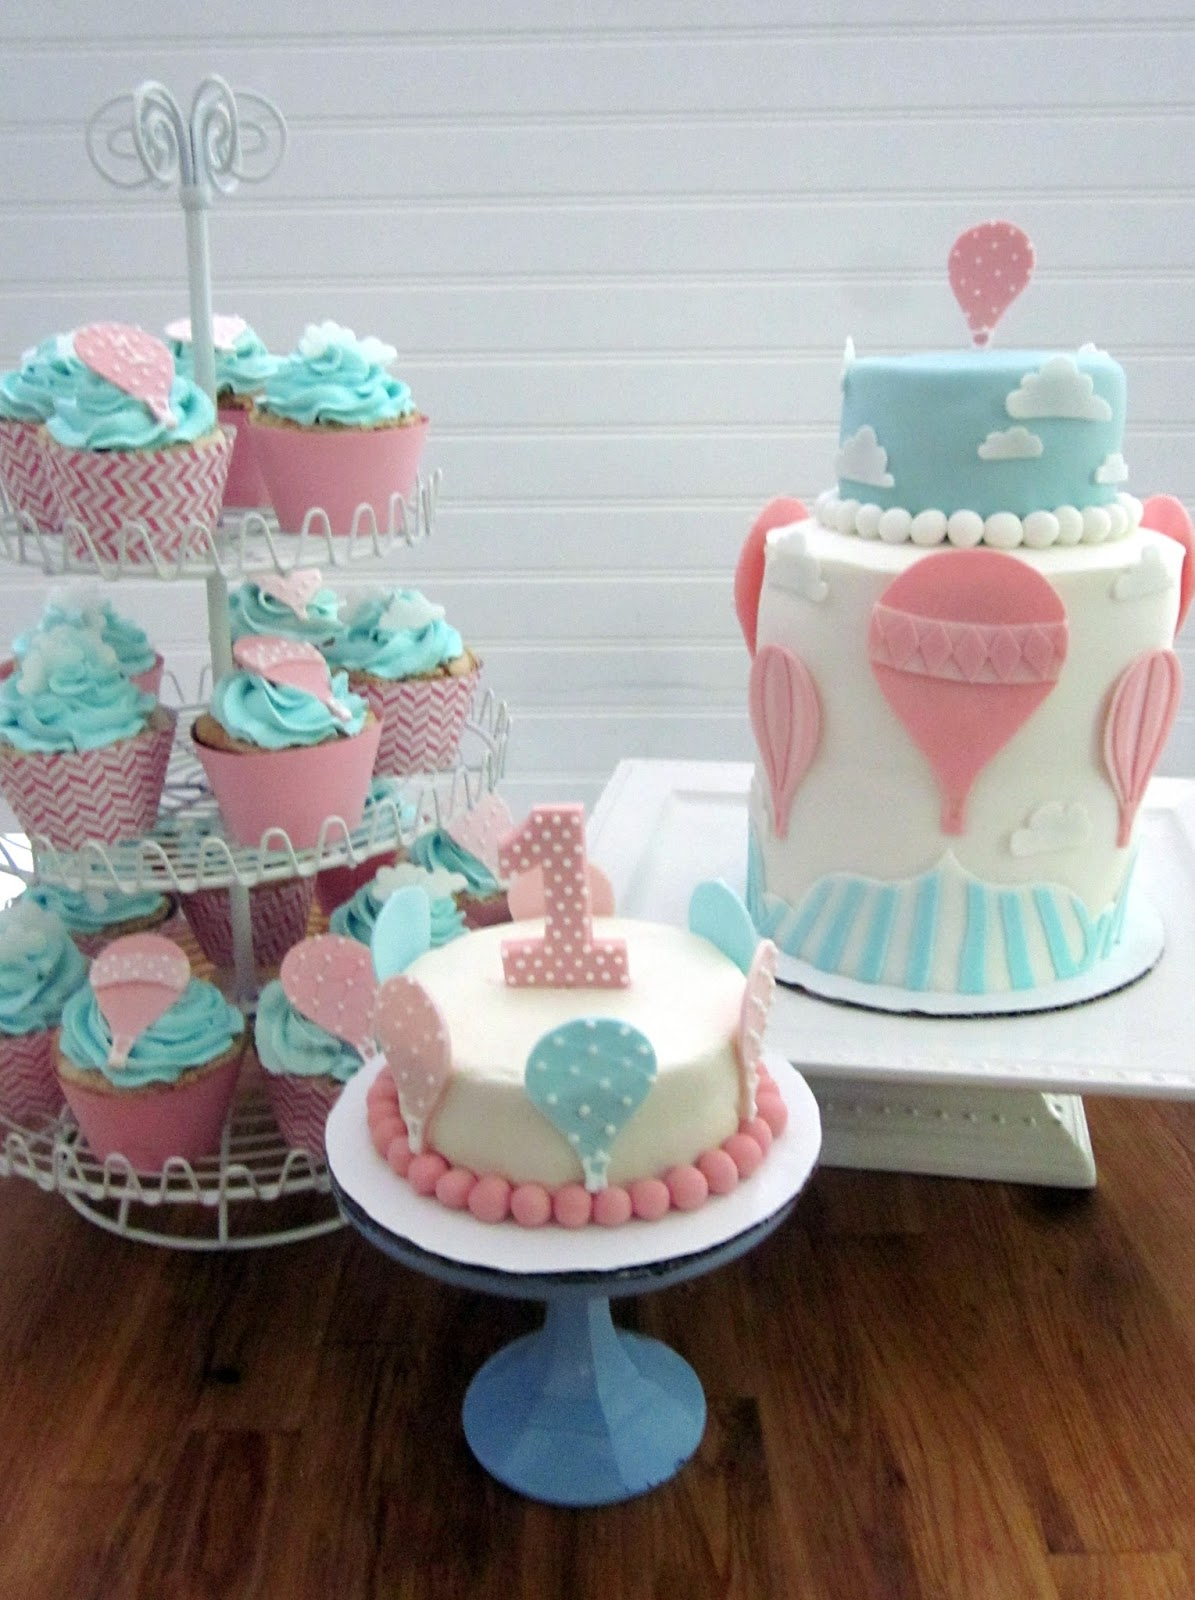 Darlin Designs Hot Air Balloon Cake And Cupcakes